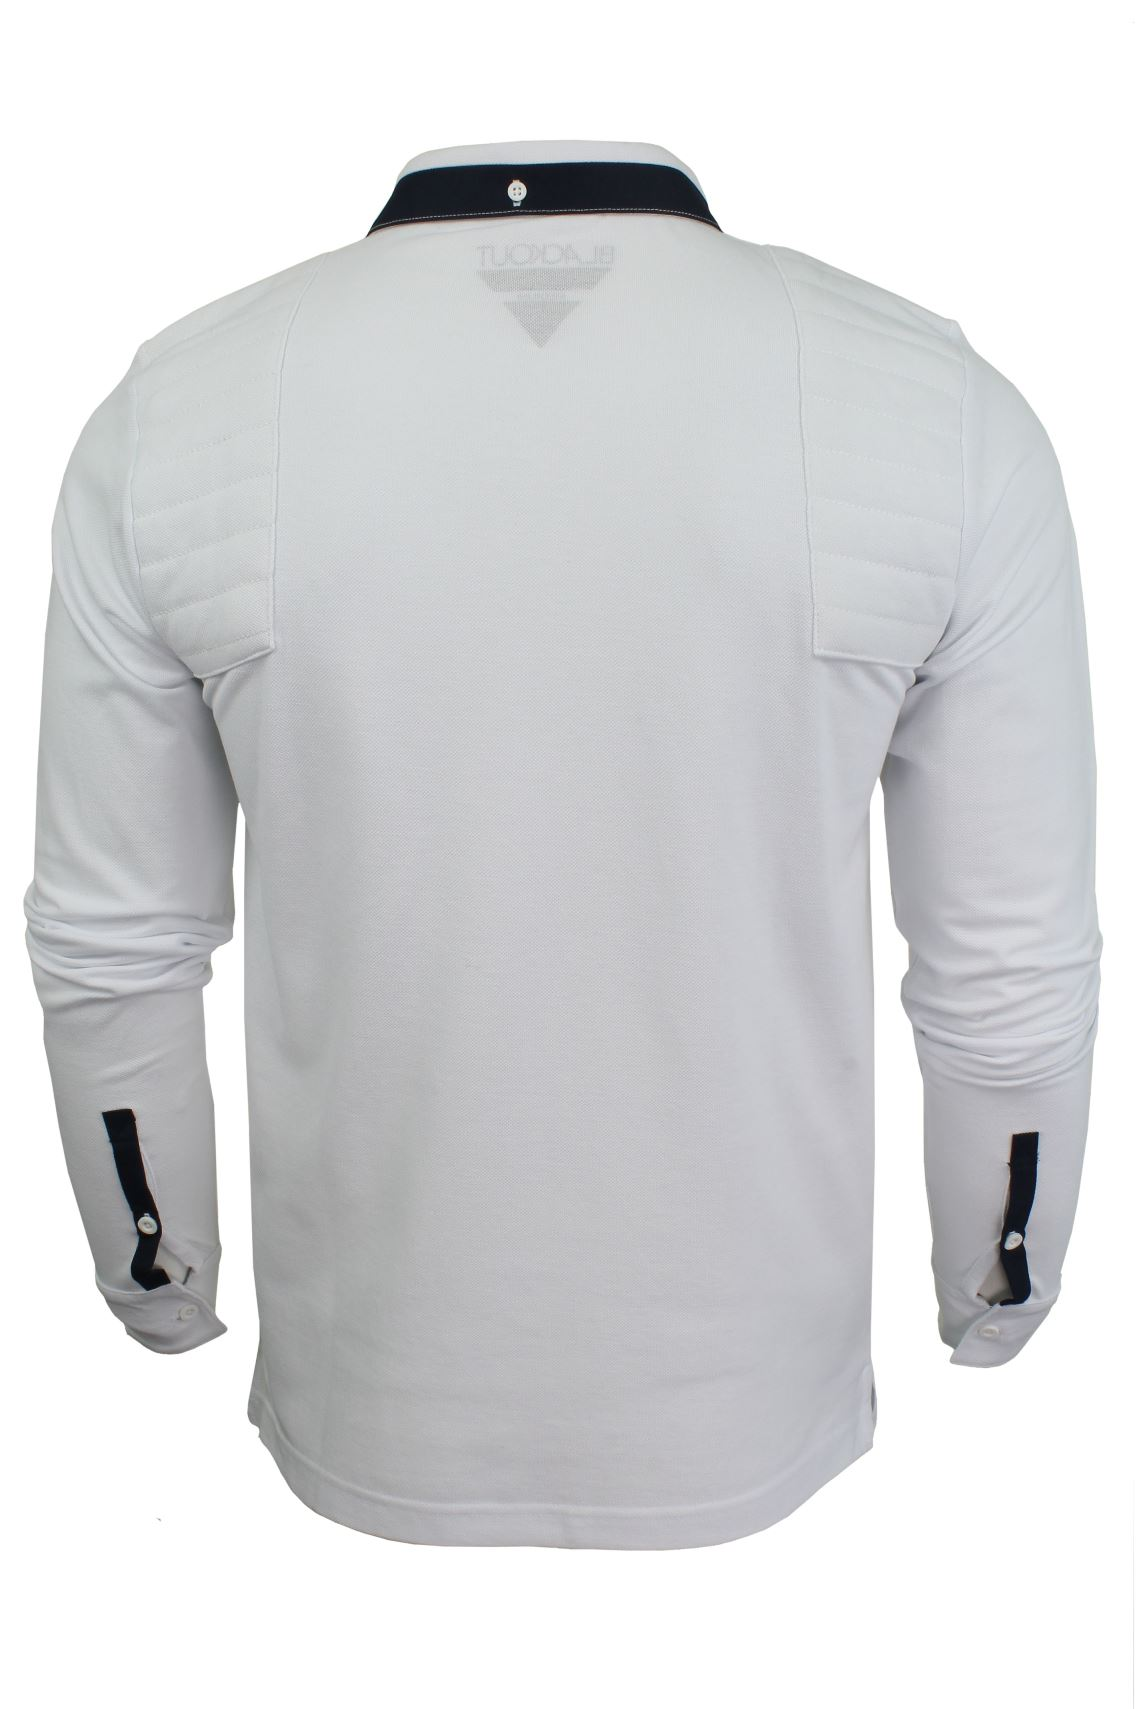 Mens-Short-Sleeved-Polo-Shirt-from-the-Blackout-Collection-by-Voi-Jeans thumbnail 7